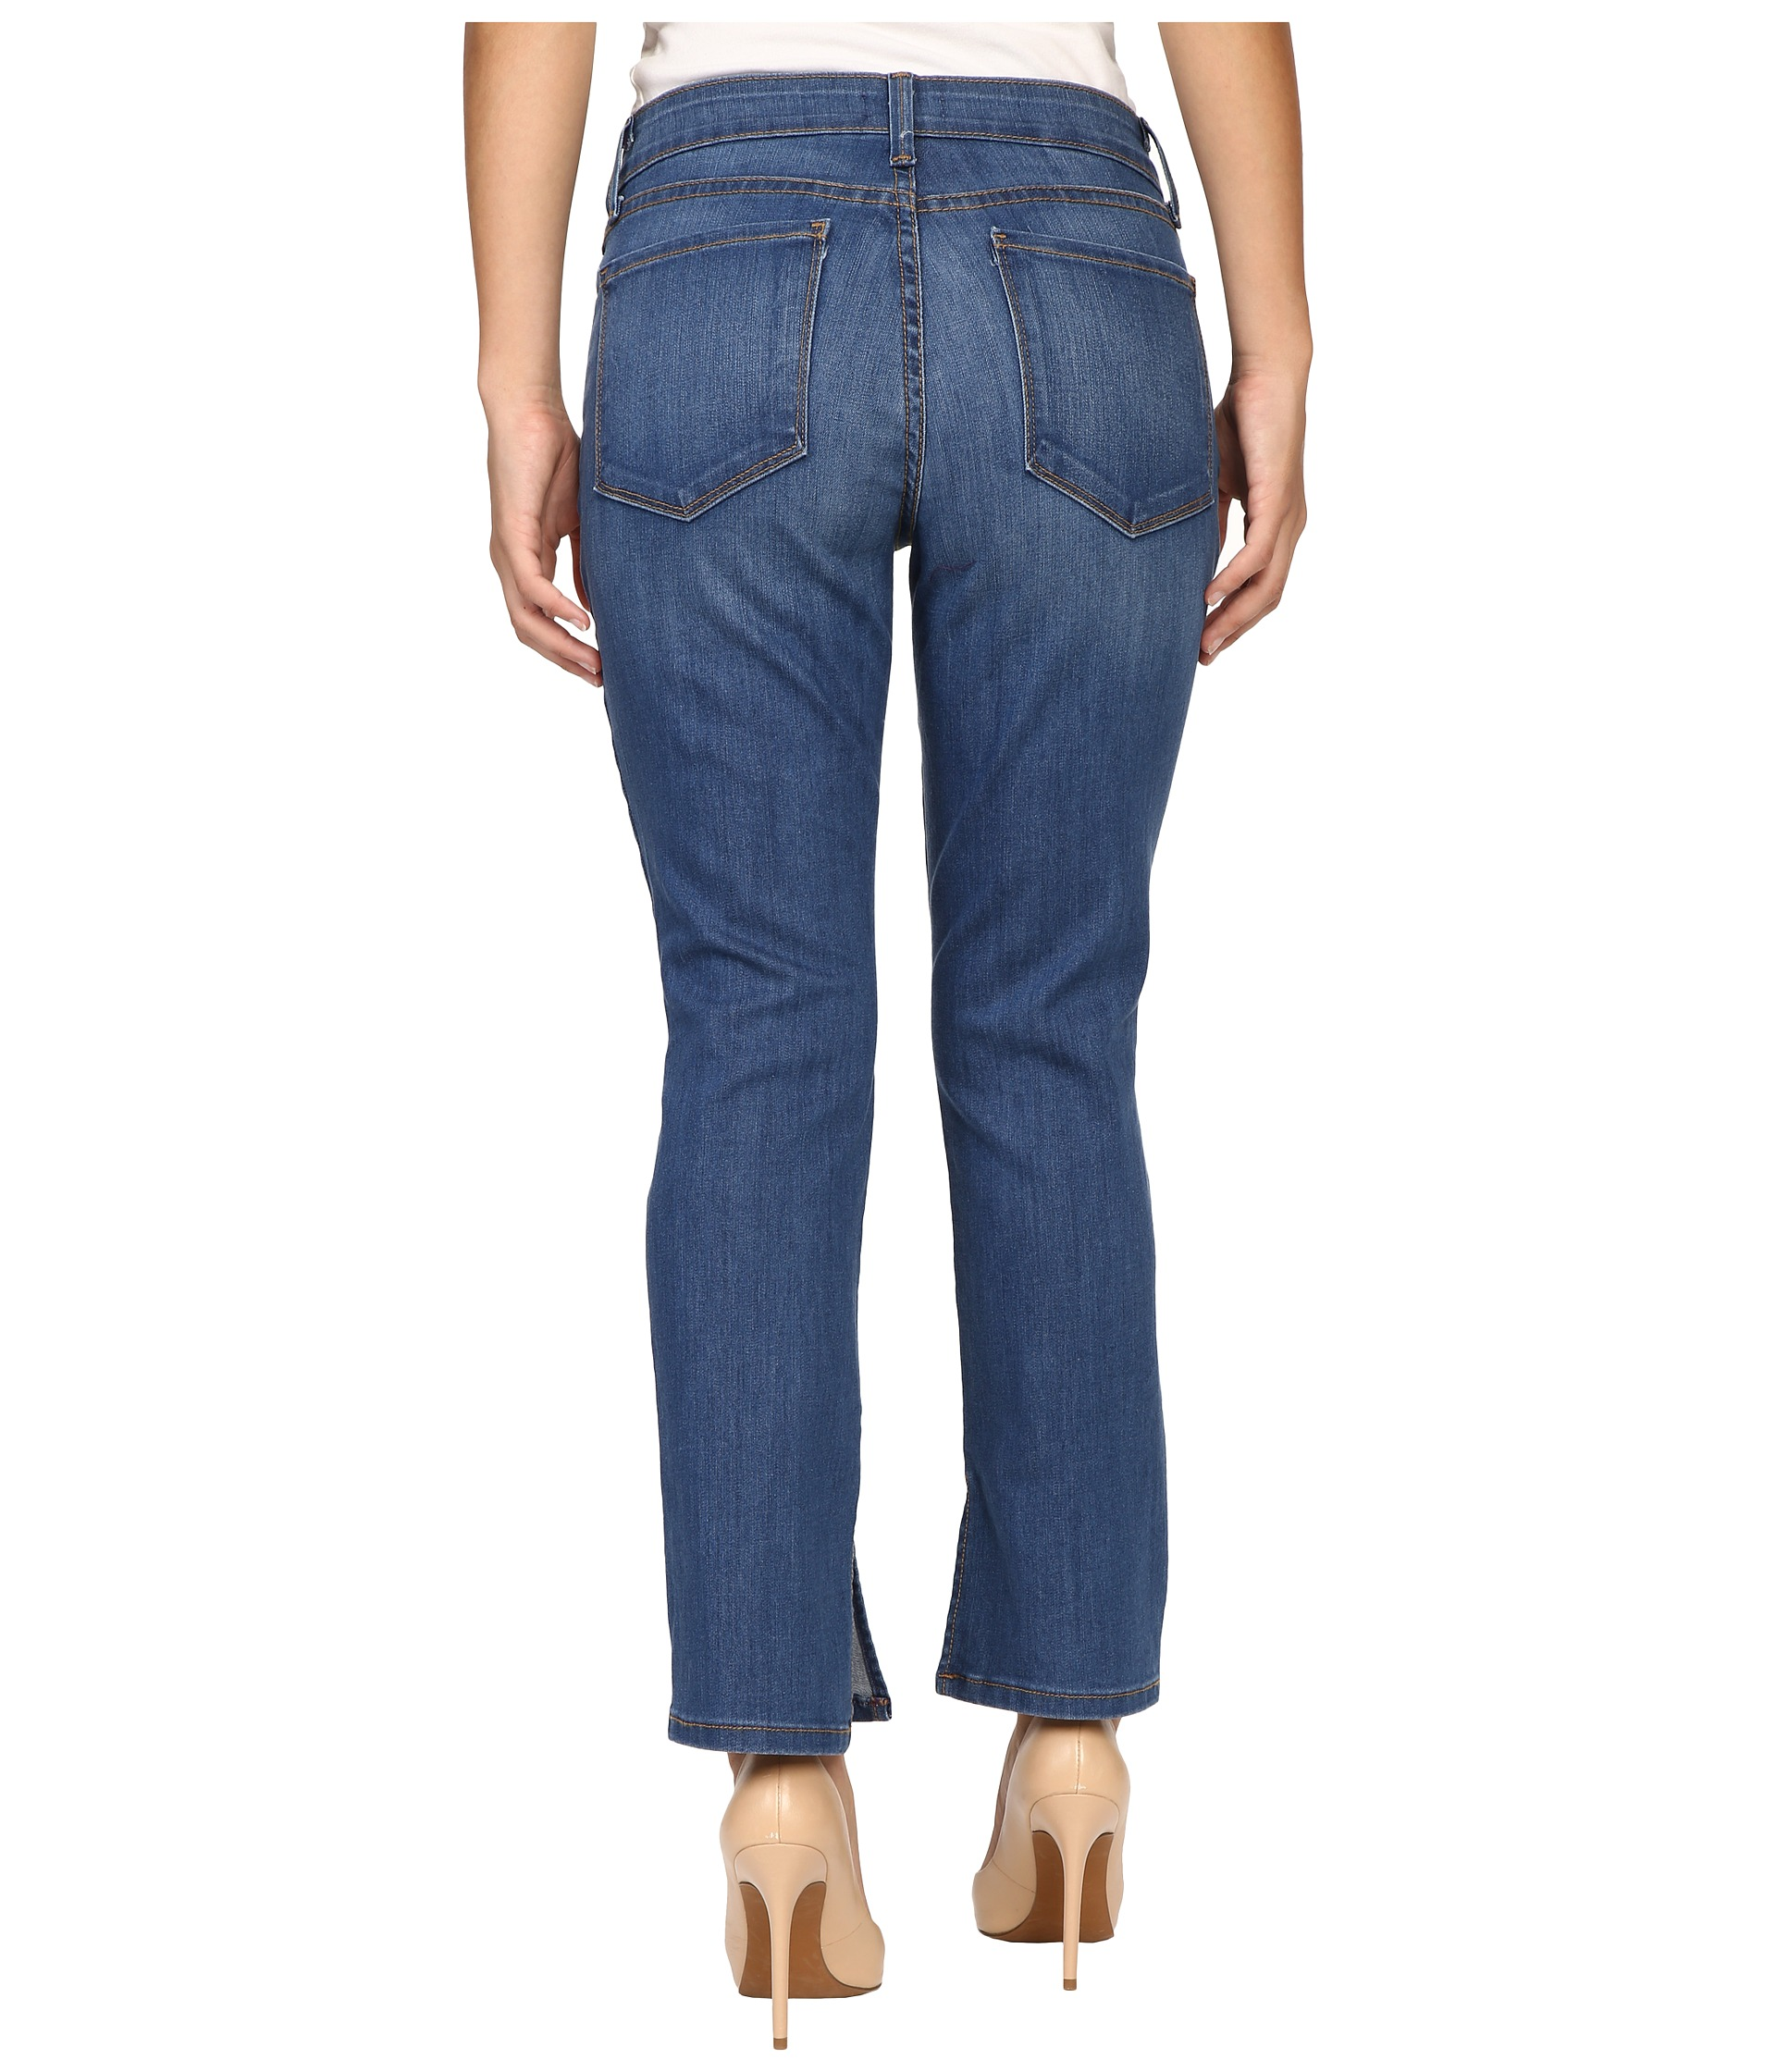 Get the best deals on ankle length jeans for petites and save up to 70% off at Poshmark now! Whatever you're shopping for, we've got it.